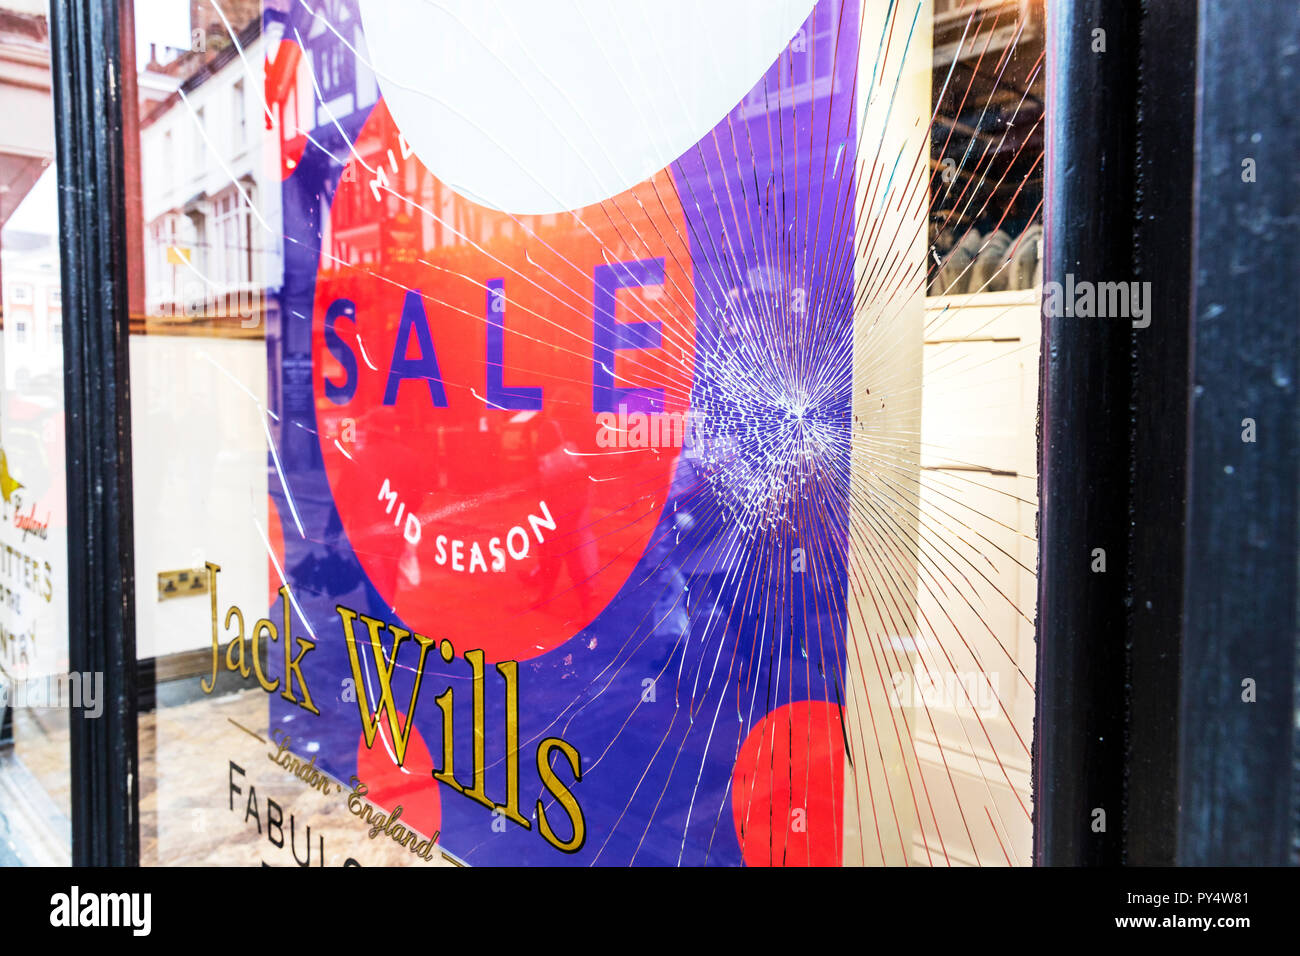 Broken window, smashed window, vandalised window vandalism, shattered glass, smashed glass, laminated glass, glass broken, shattered window, broken - Stock Image